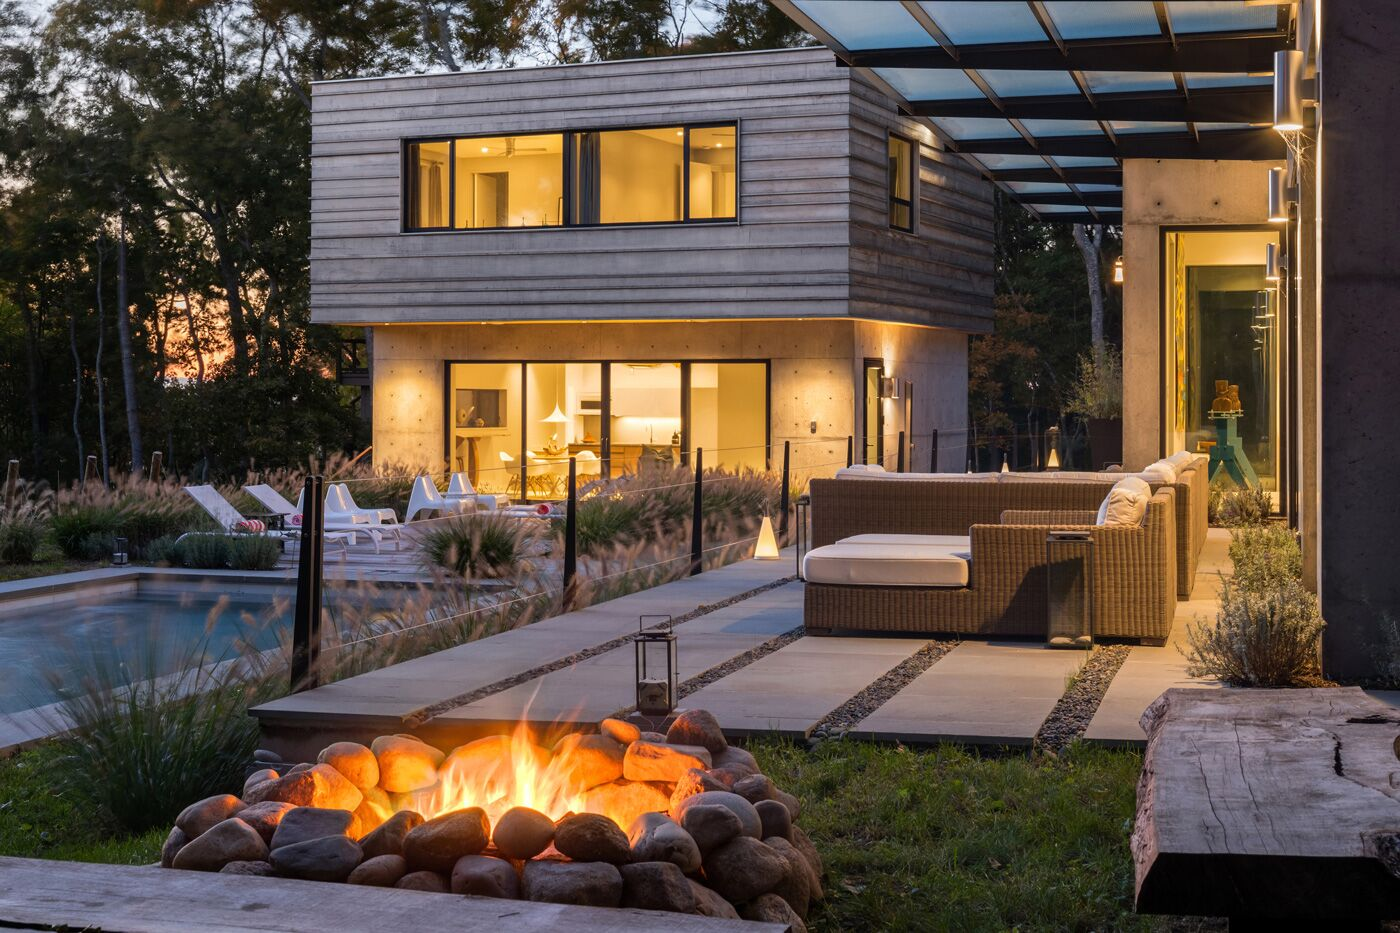 Evening campfire with stone patio and cable railing